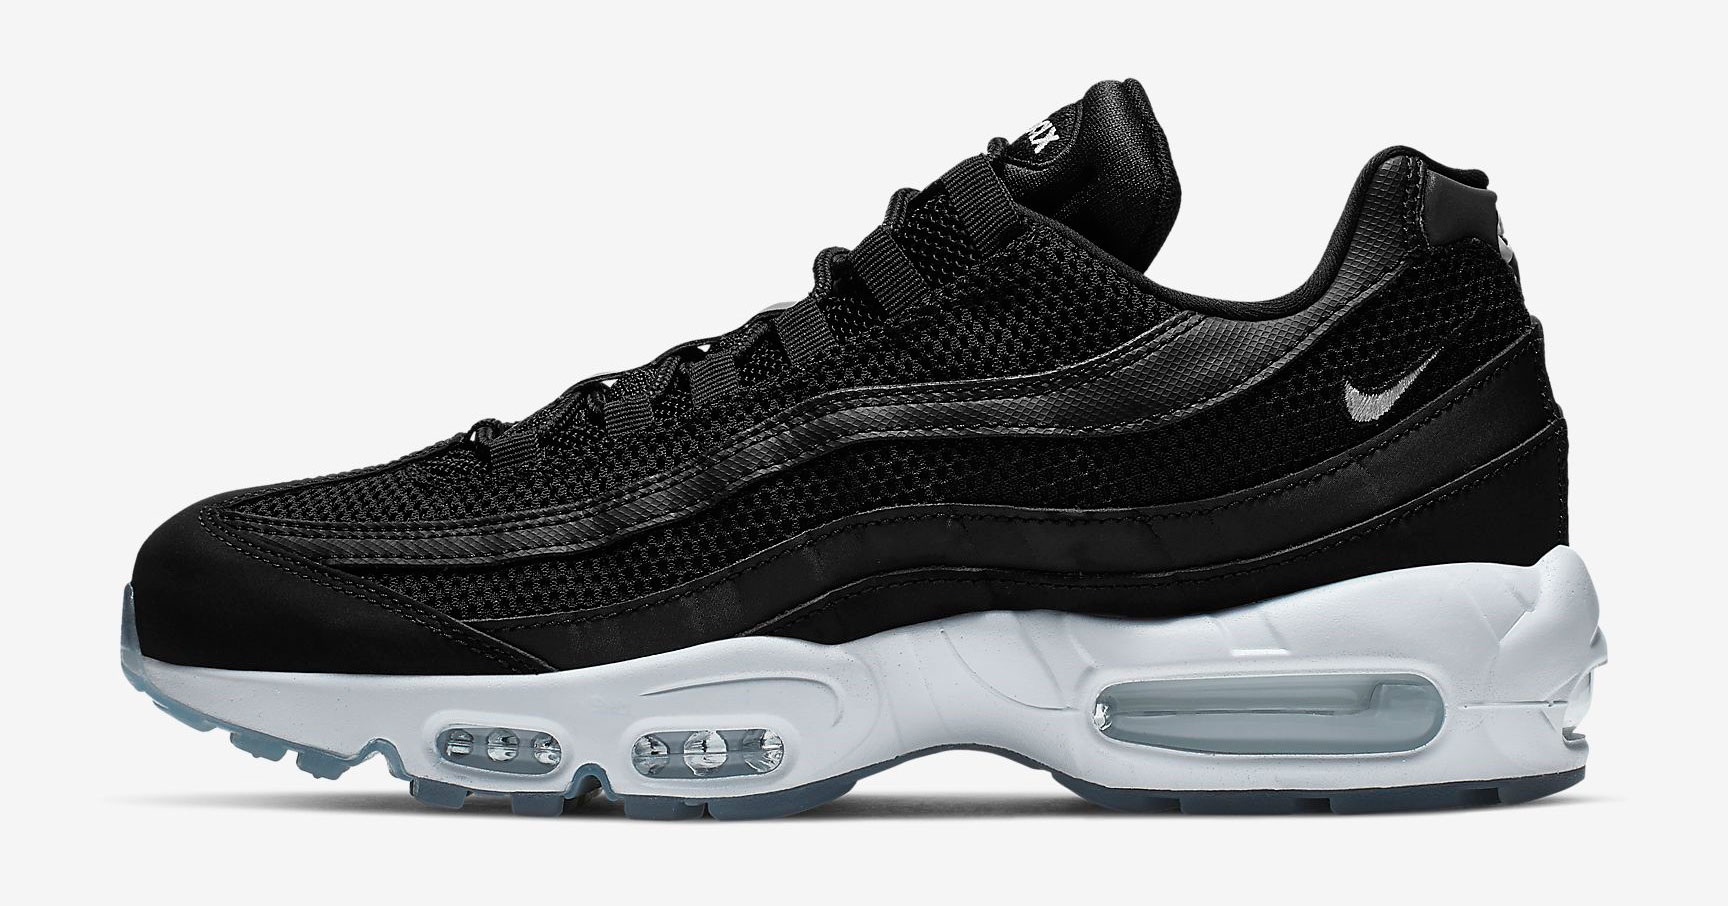 nike-air-max-95-black-white-platinum-release-date-where-to-buy